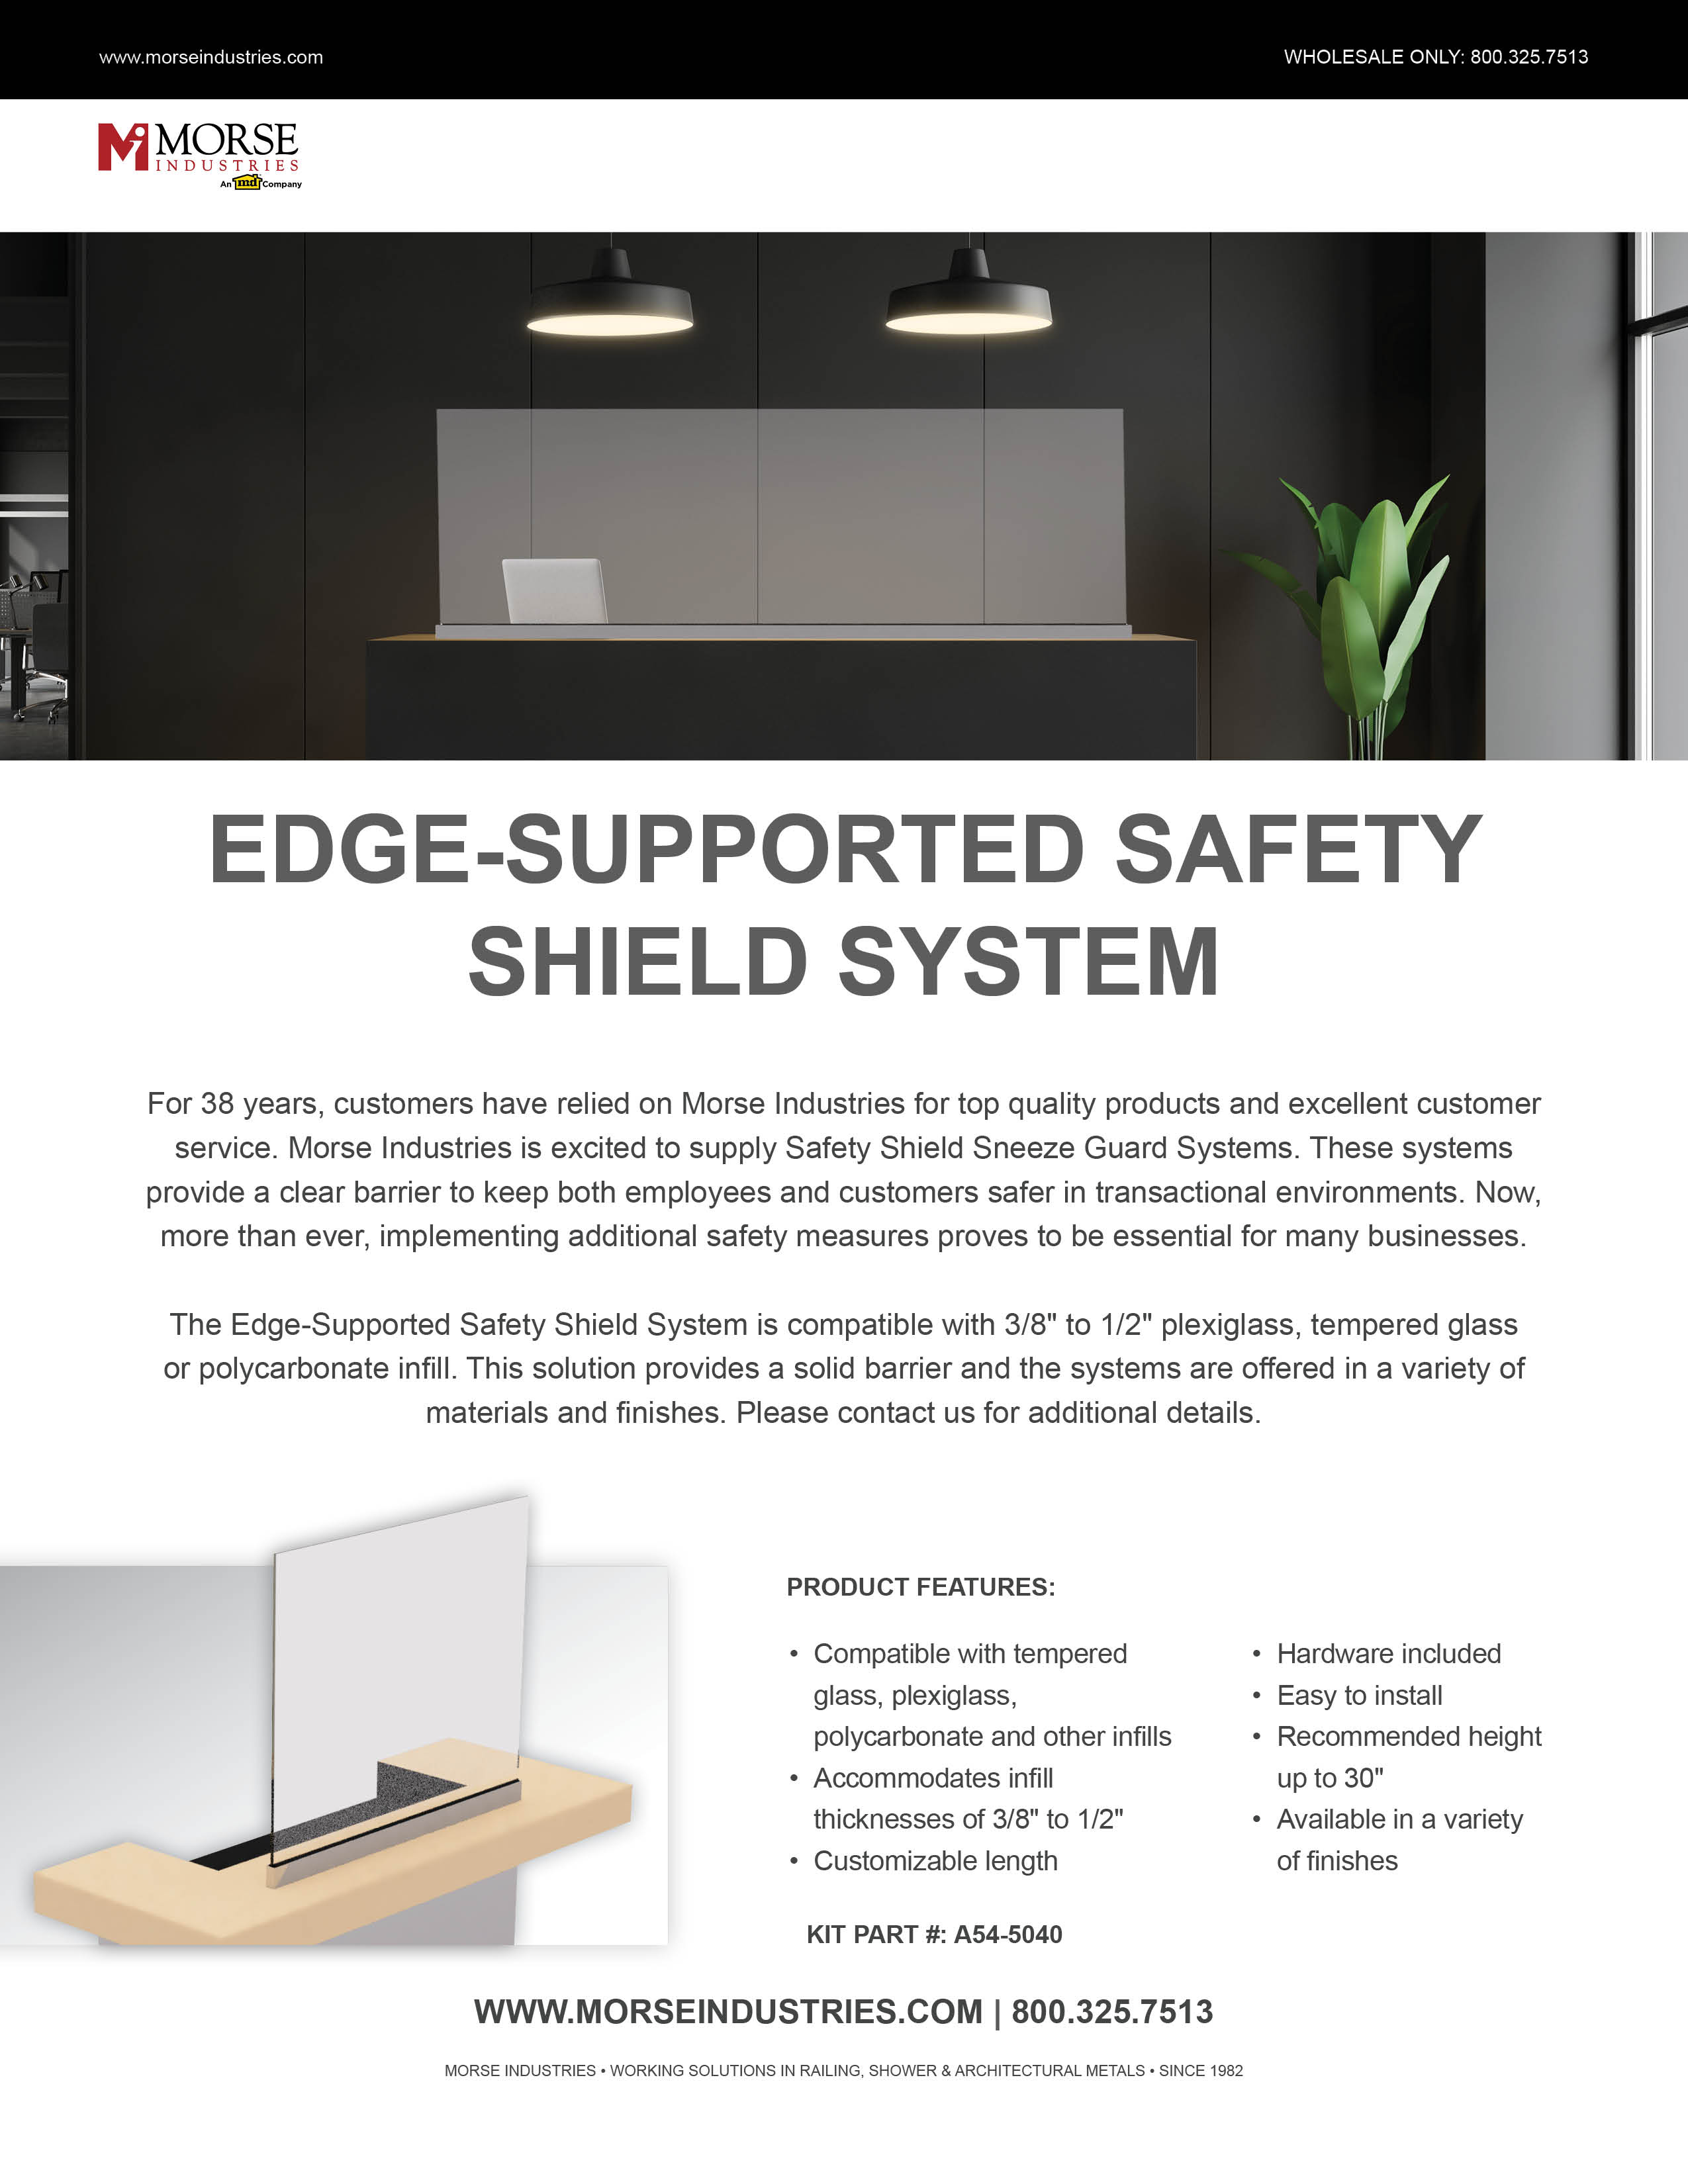 Edge-Supported Safety Shield